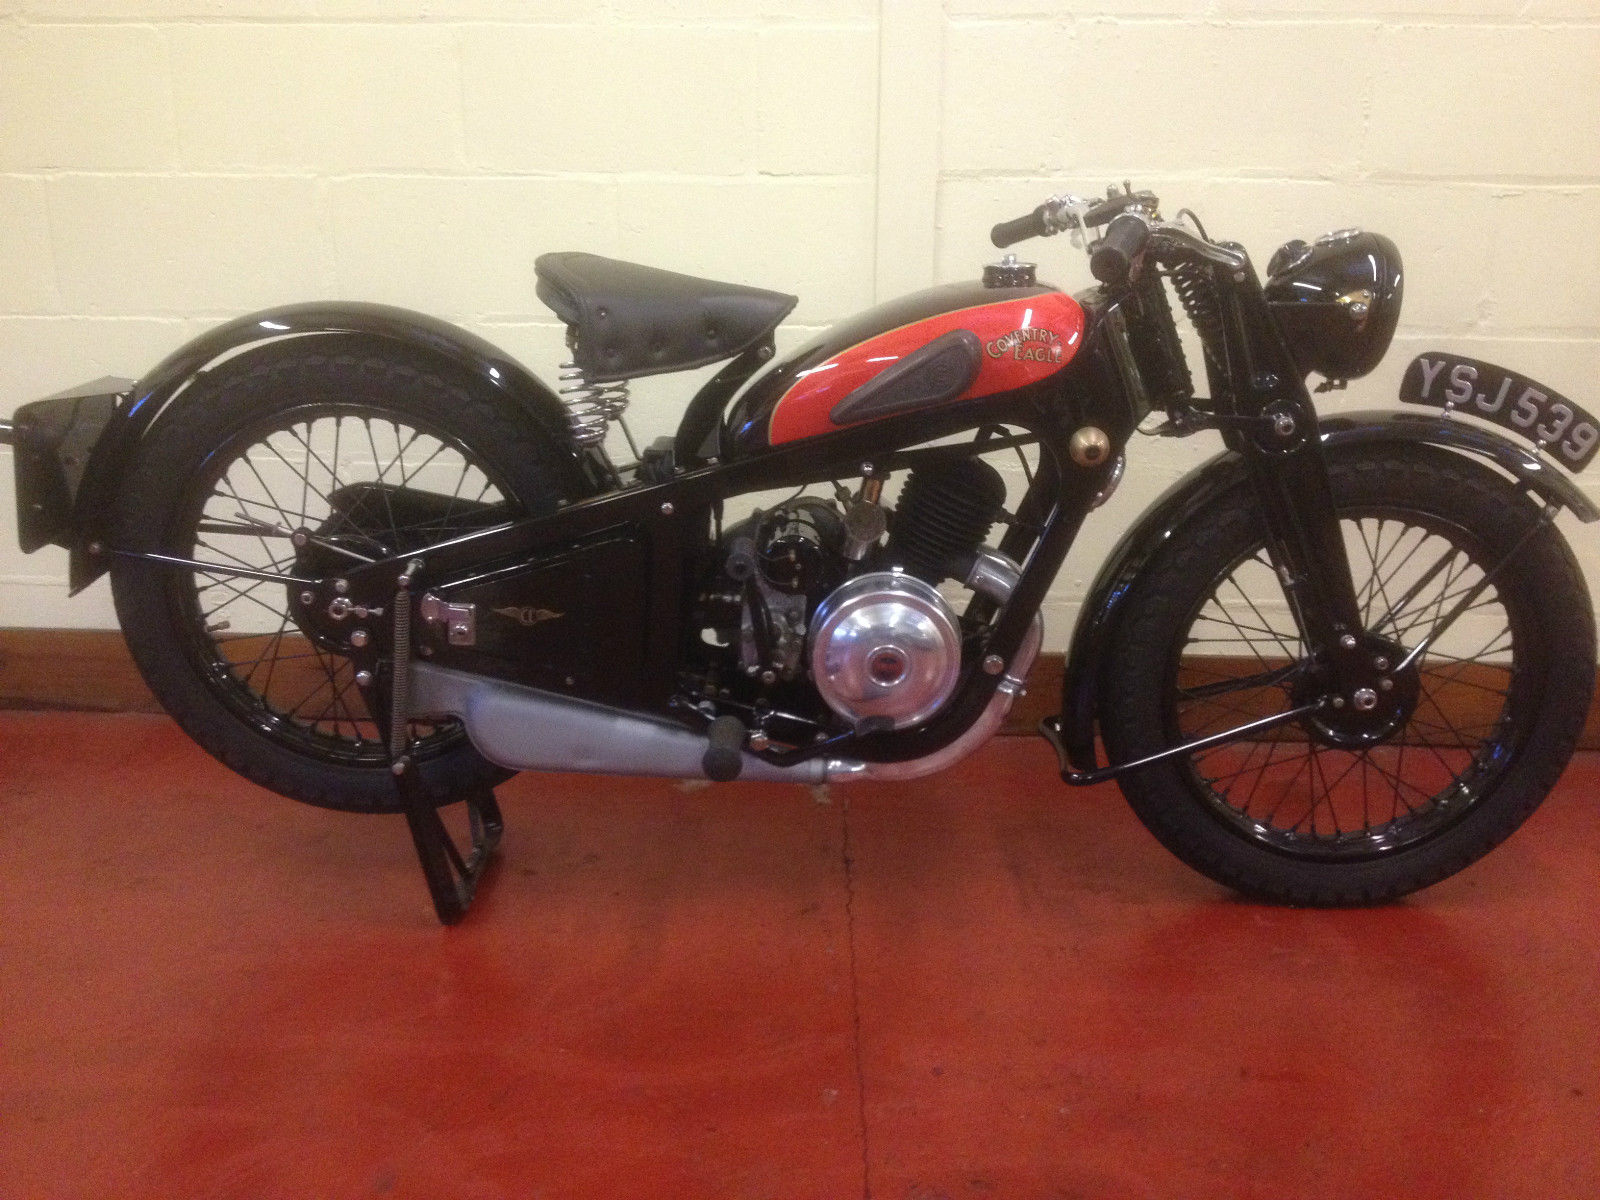 Coventry-Eagle - 1934 - Right Side View, Motor and Transmission, Gas Tank, Saddle and Springs.